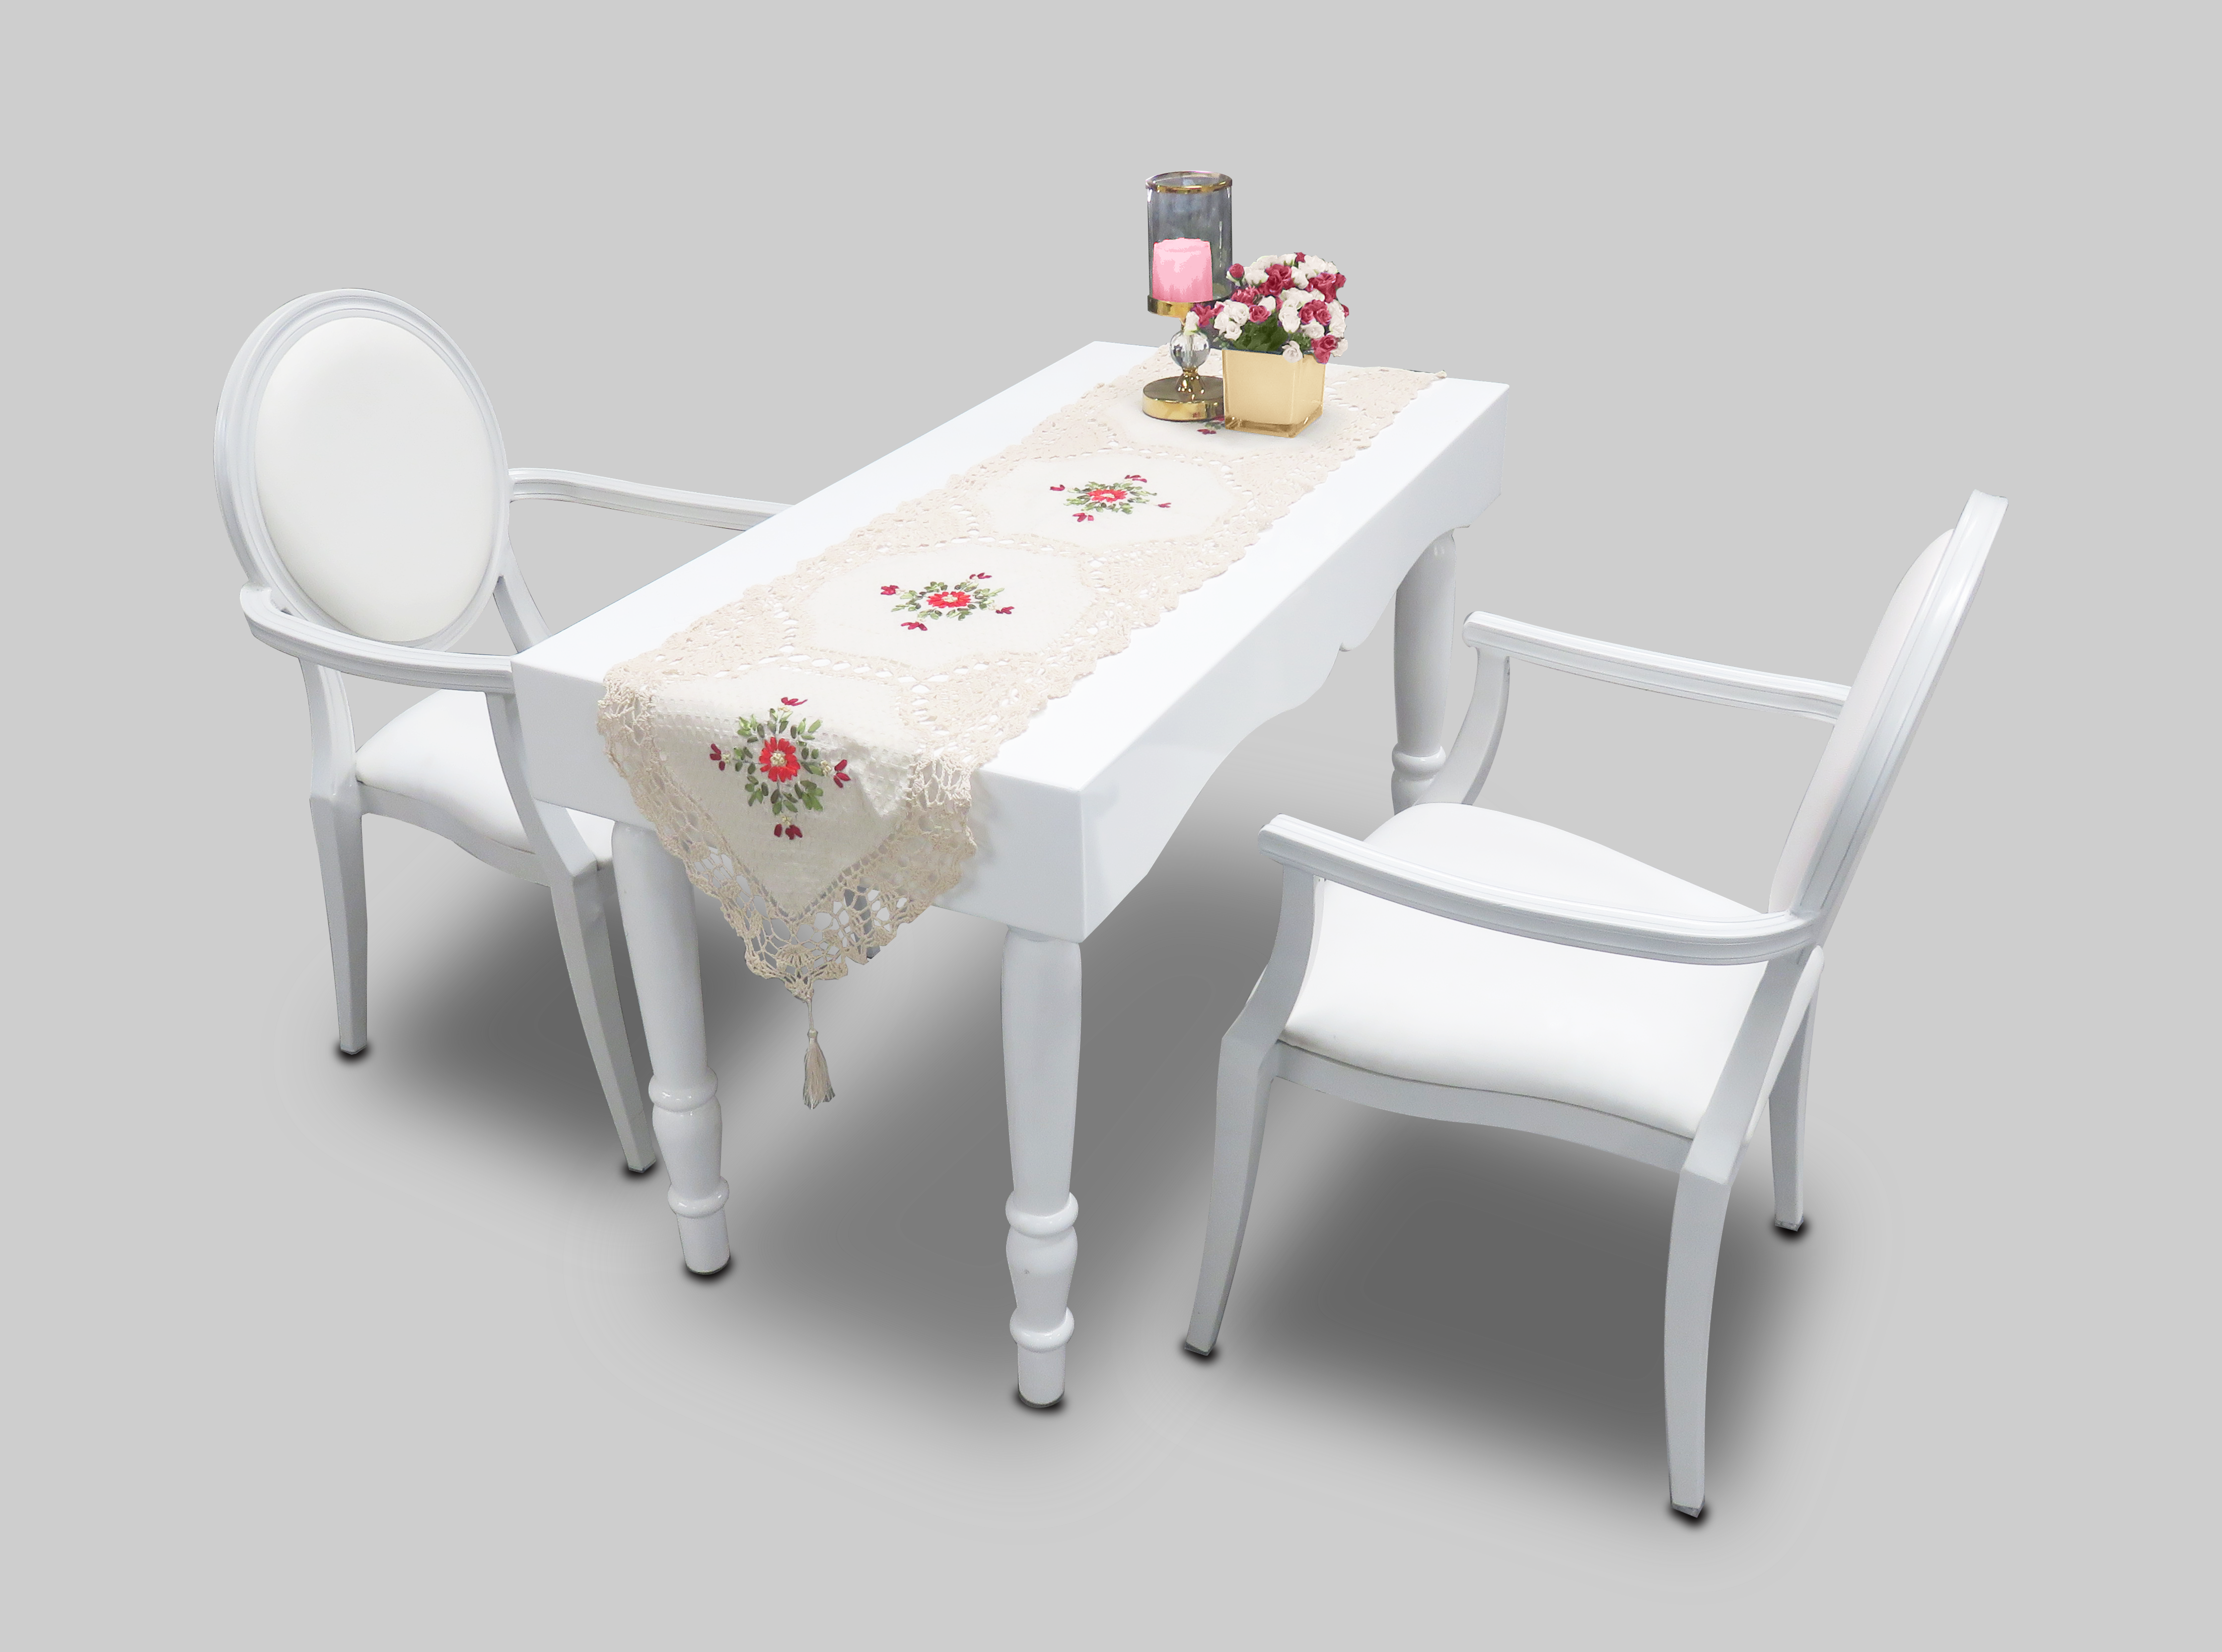 Avalon Chic Rectangular White Dining Table Available For Rent Or